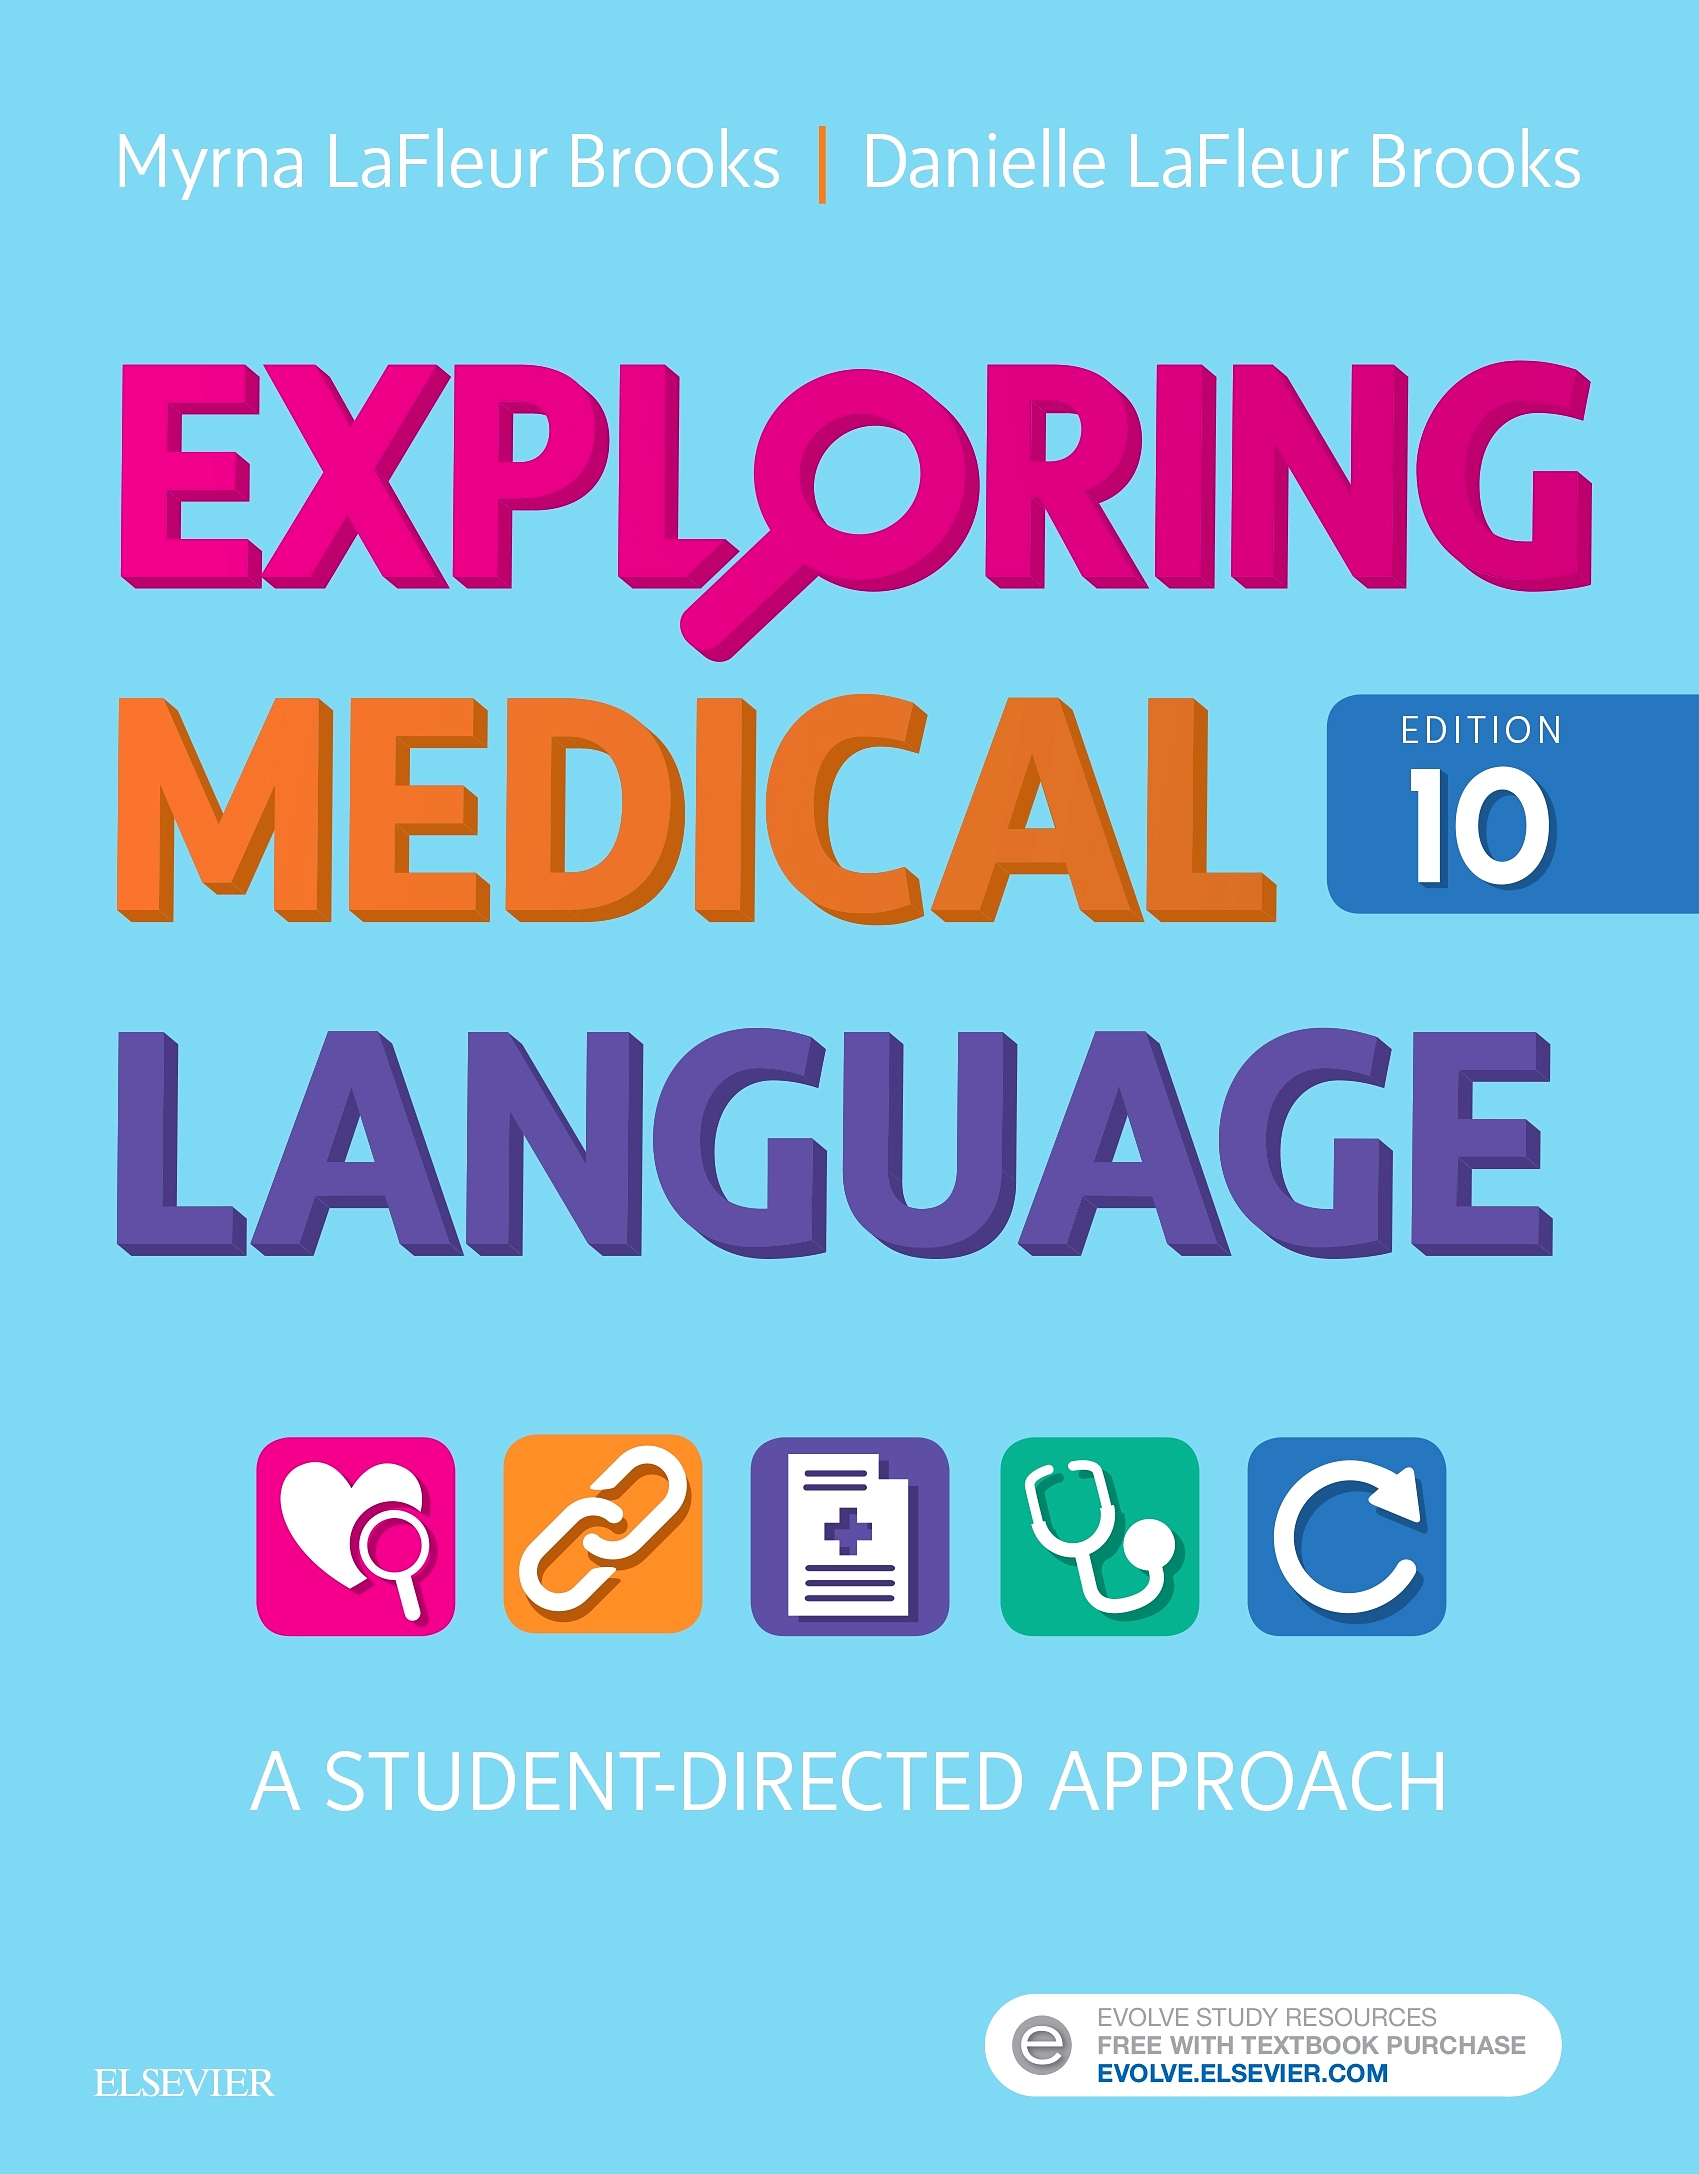 AudioTerms Audio for Exploring Medical Language, 10th Edition